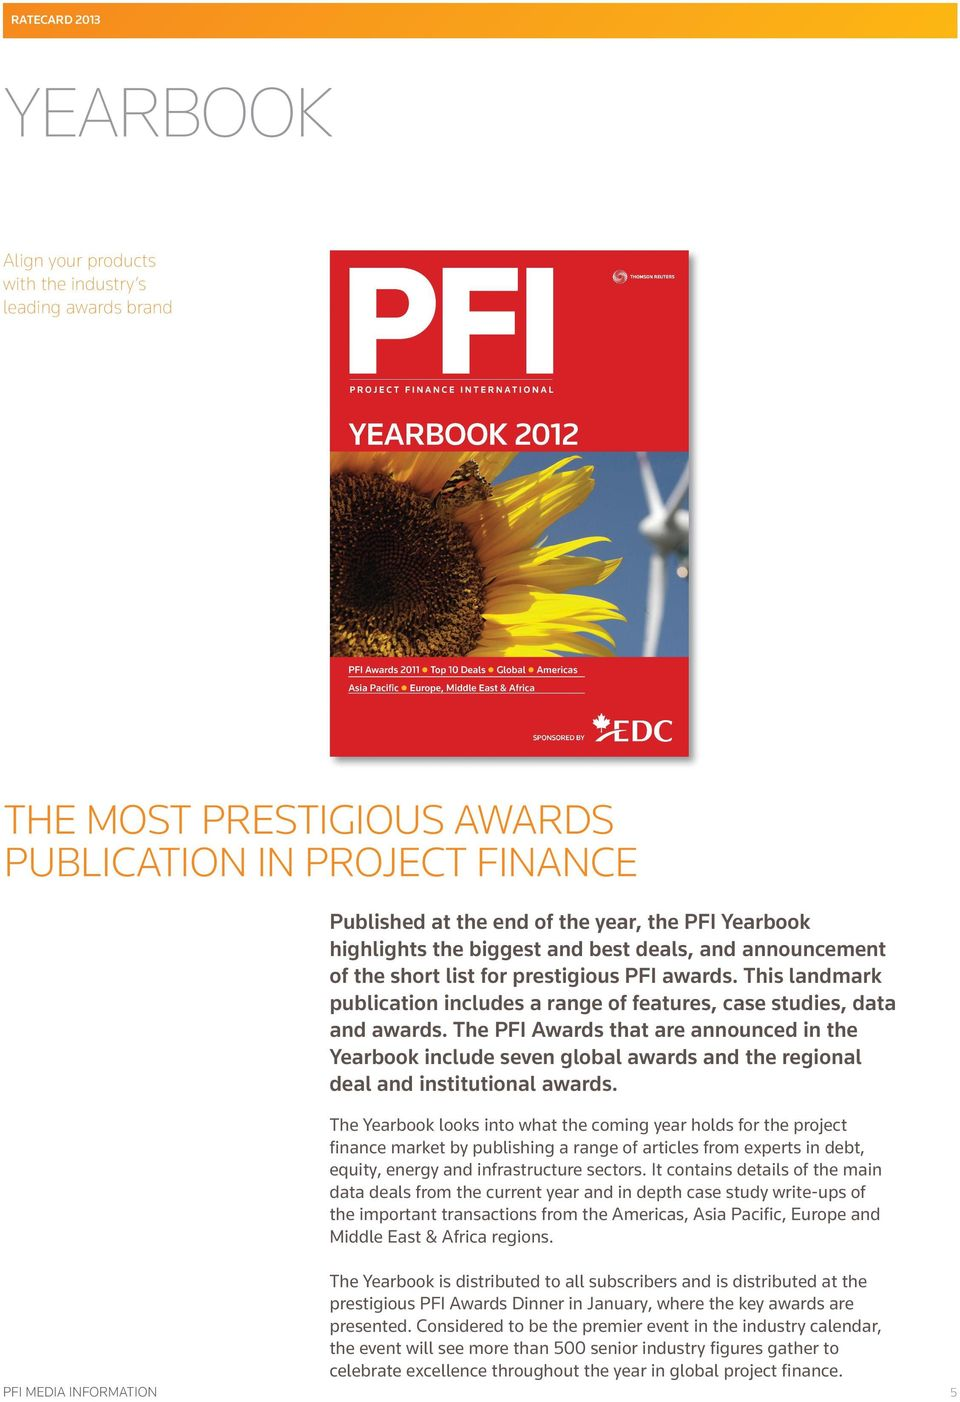 The PFI Awards that are announced in the Yearbook include seven global awards and the regional deal and institutional awards.